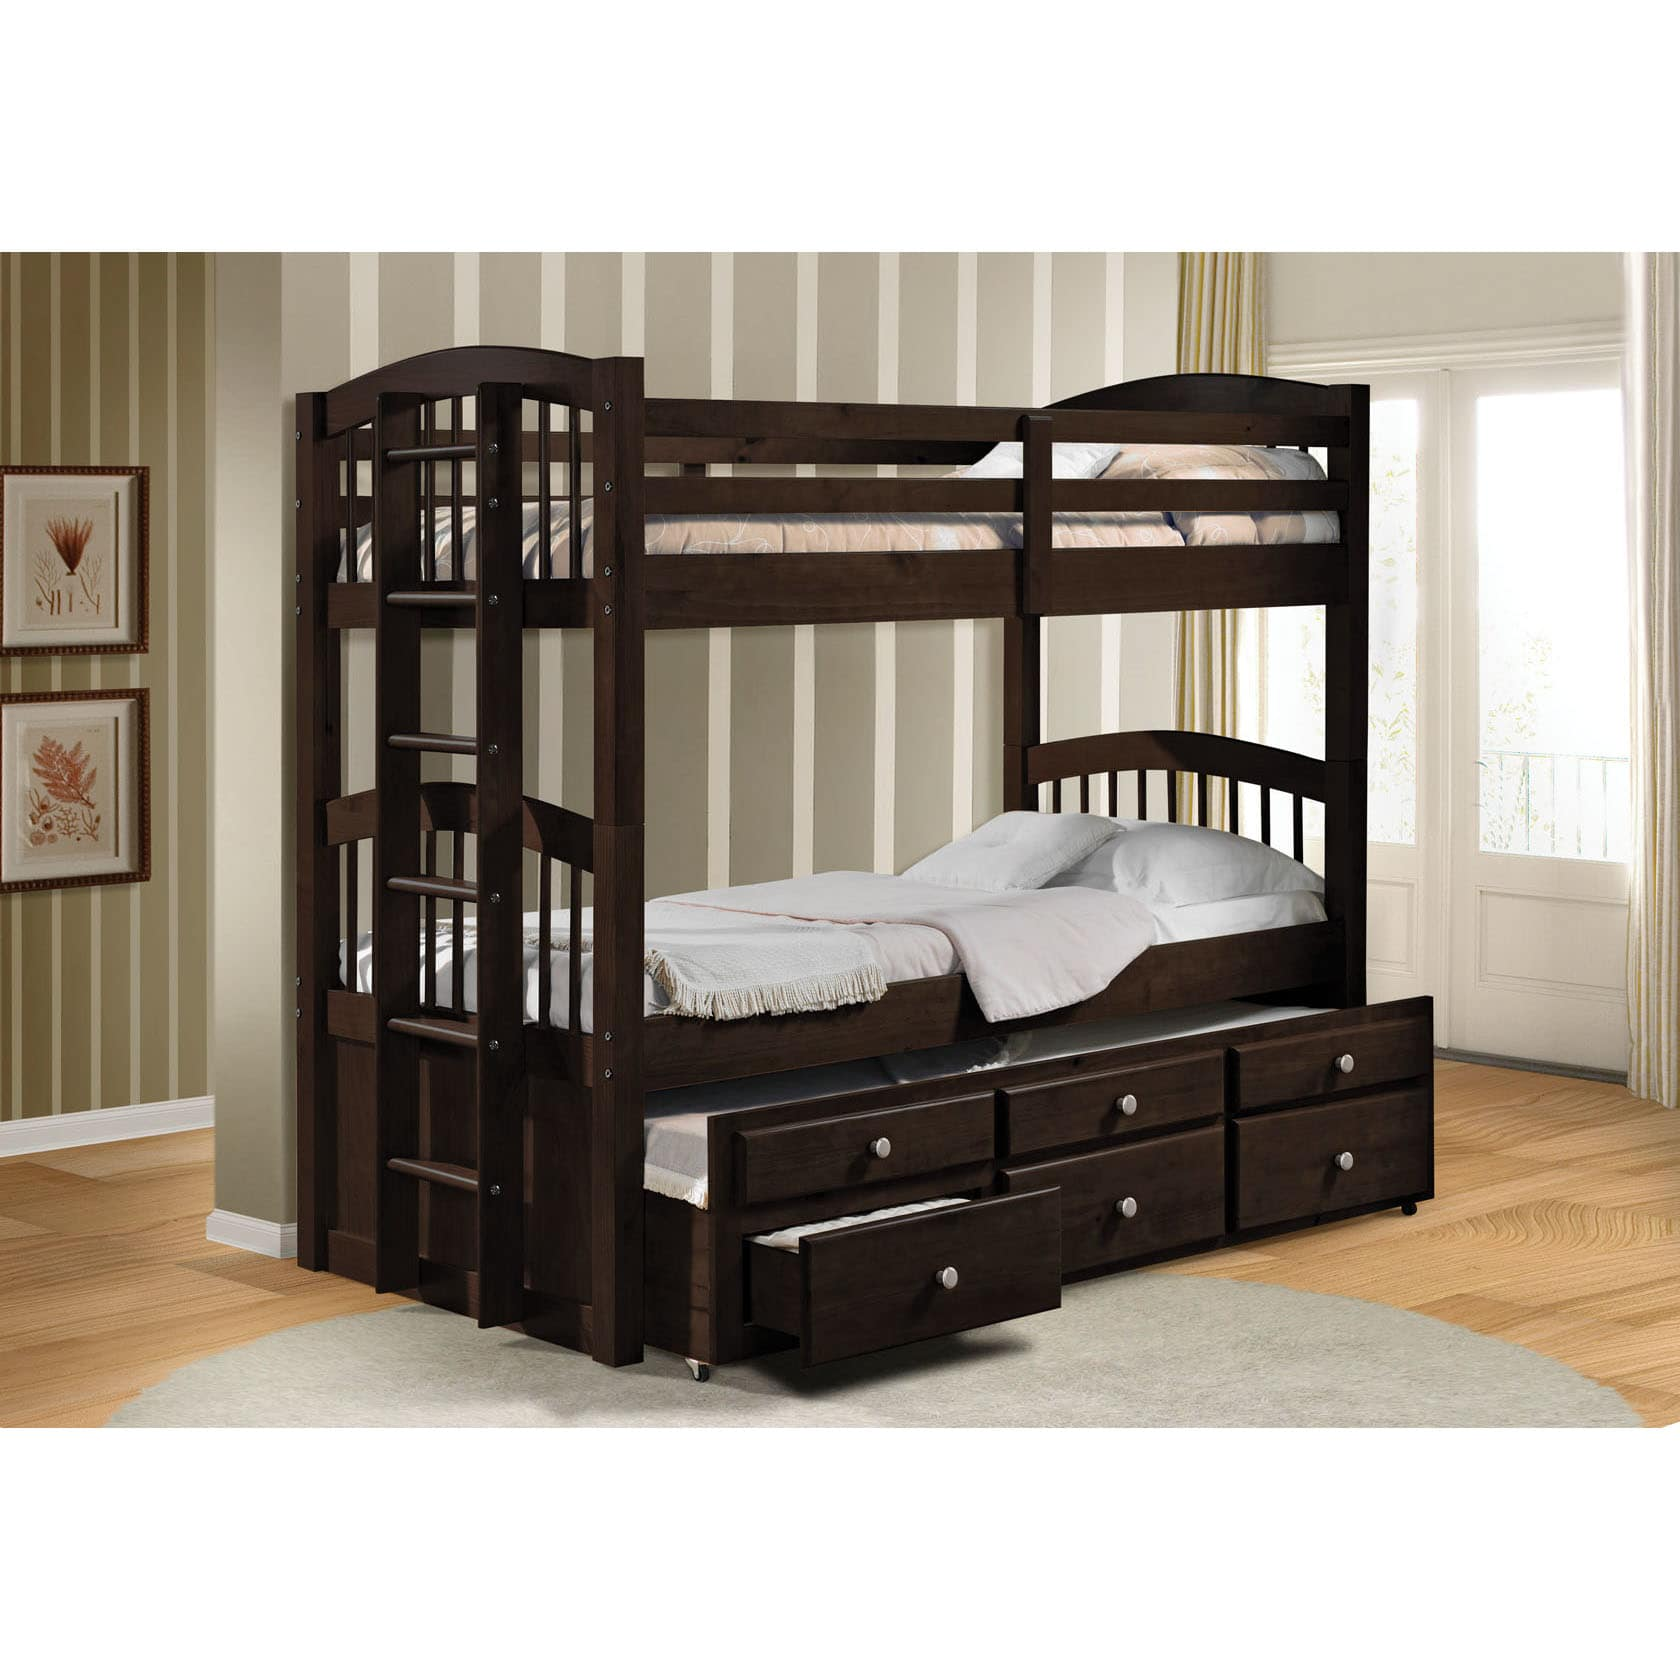 Acme Micah Espresso Twin Bunk Bed with Trundle by Overstock